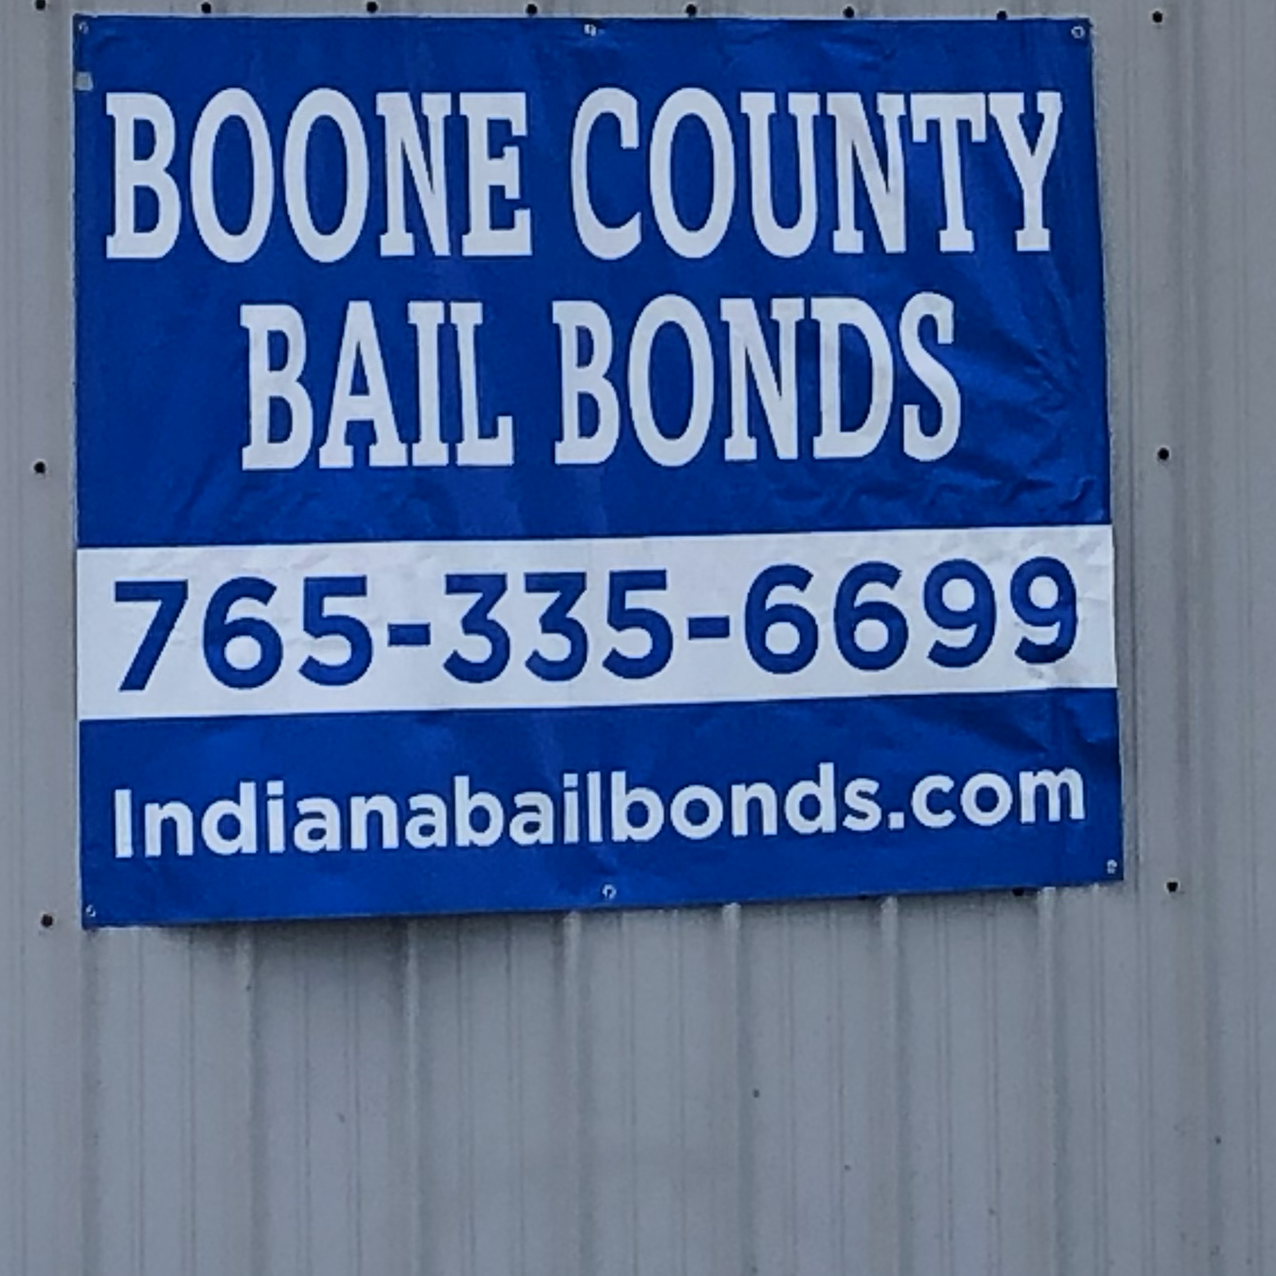 Boone County Bail Bonds